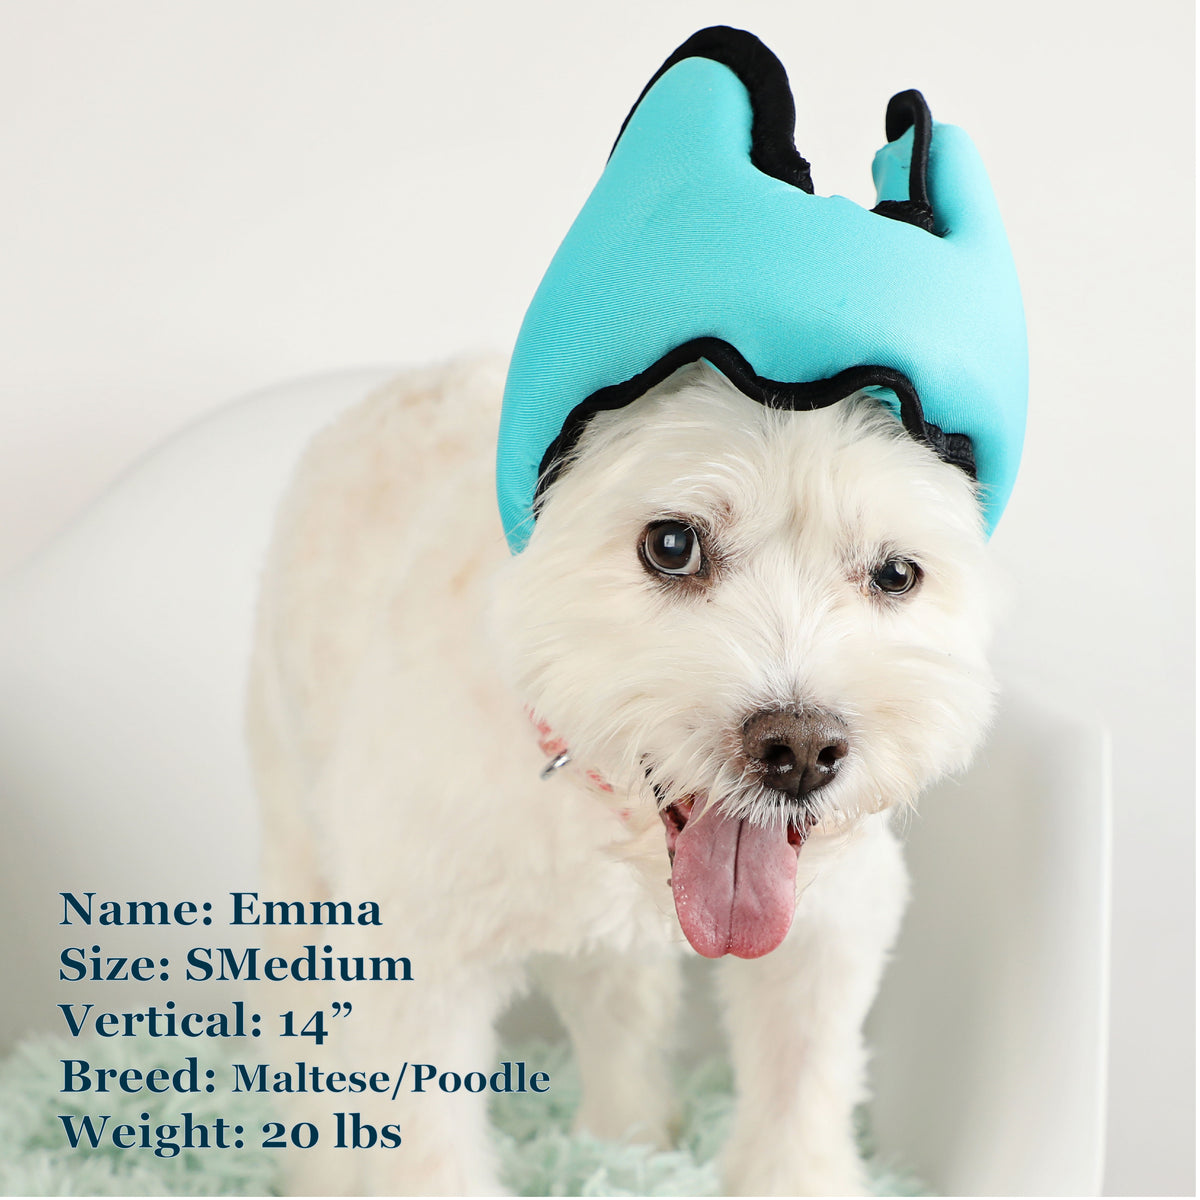 Emma is a Maltese Poodle Mix and can wear a Smedium or Medium Blue PAWNIX Noise Cancelling Headset for dogs